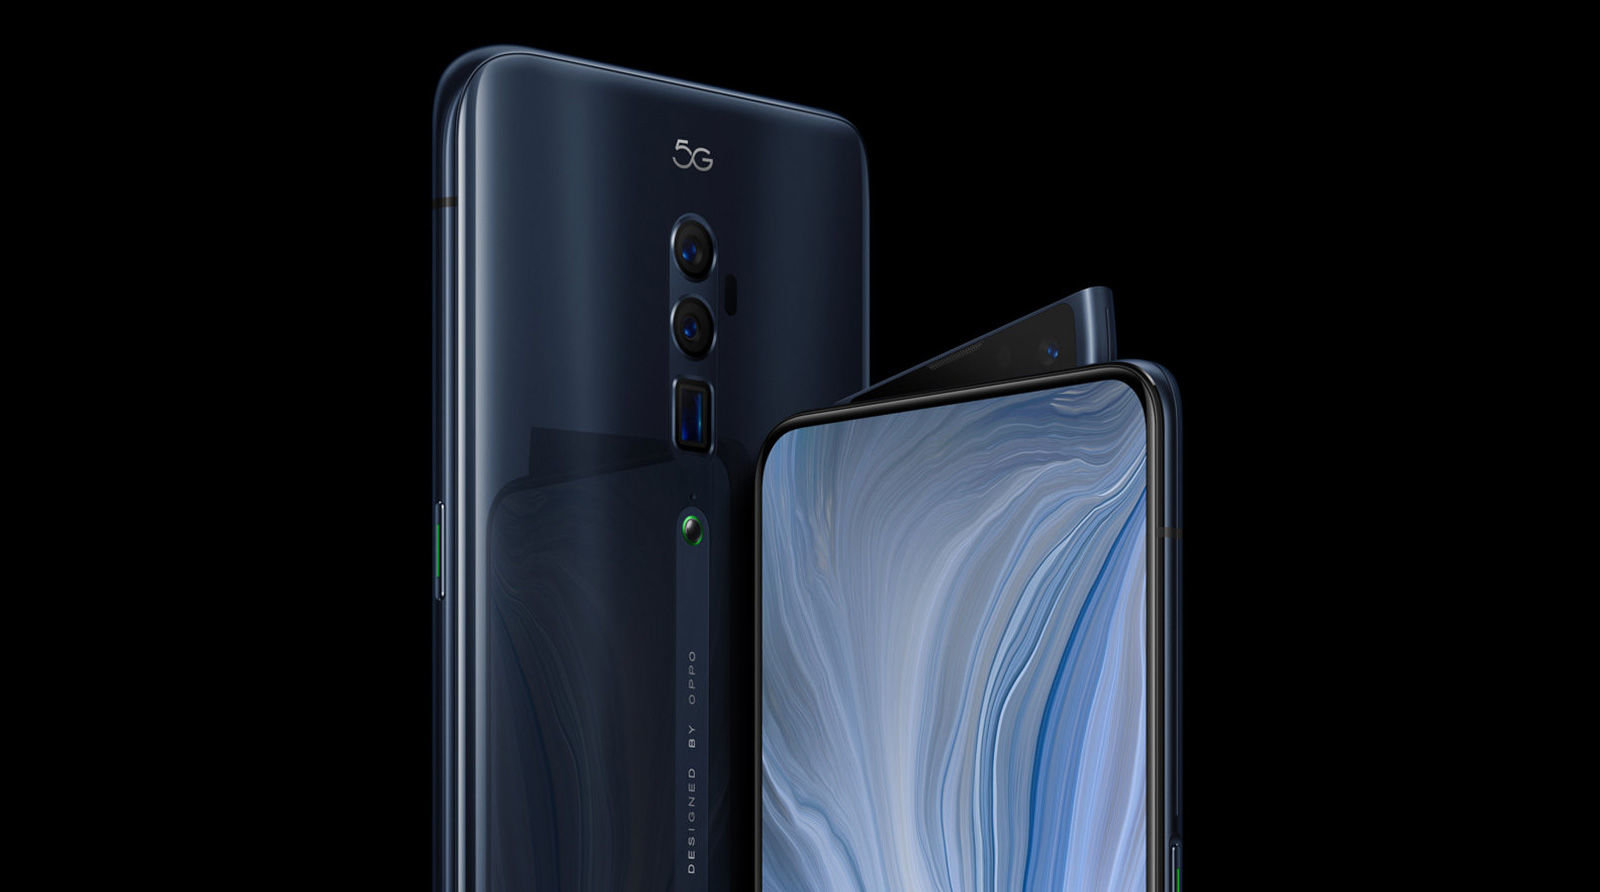 Oppo Reno 10x is a new series of Reno Oppo